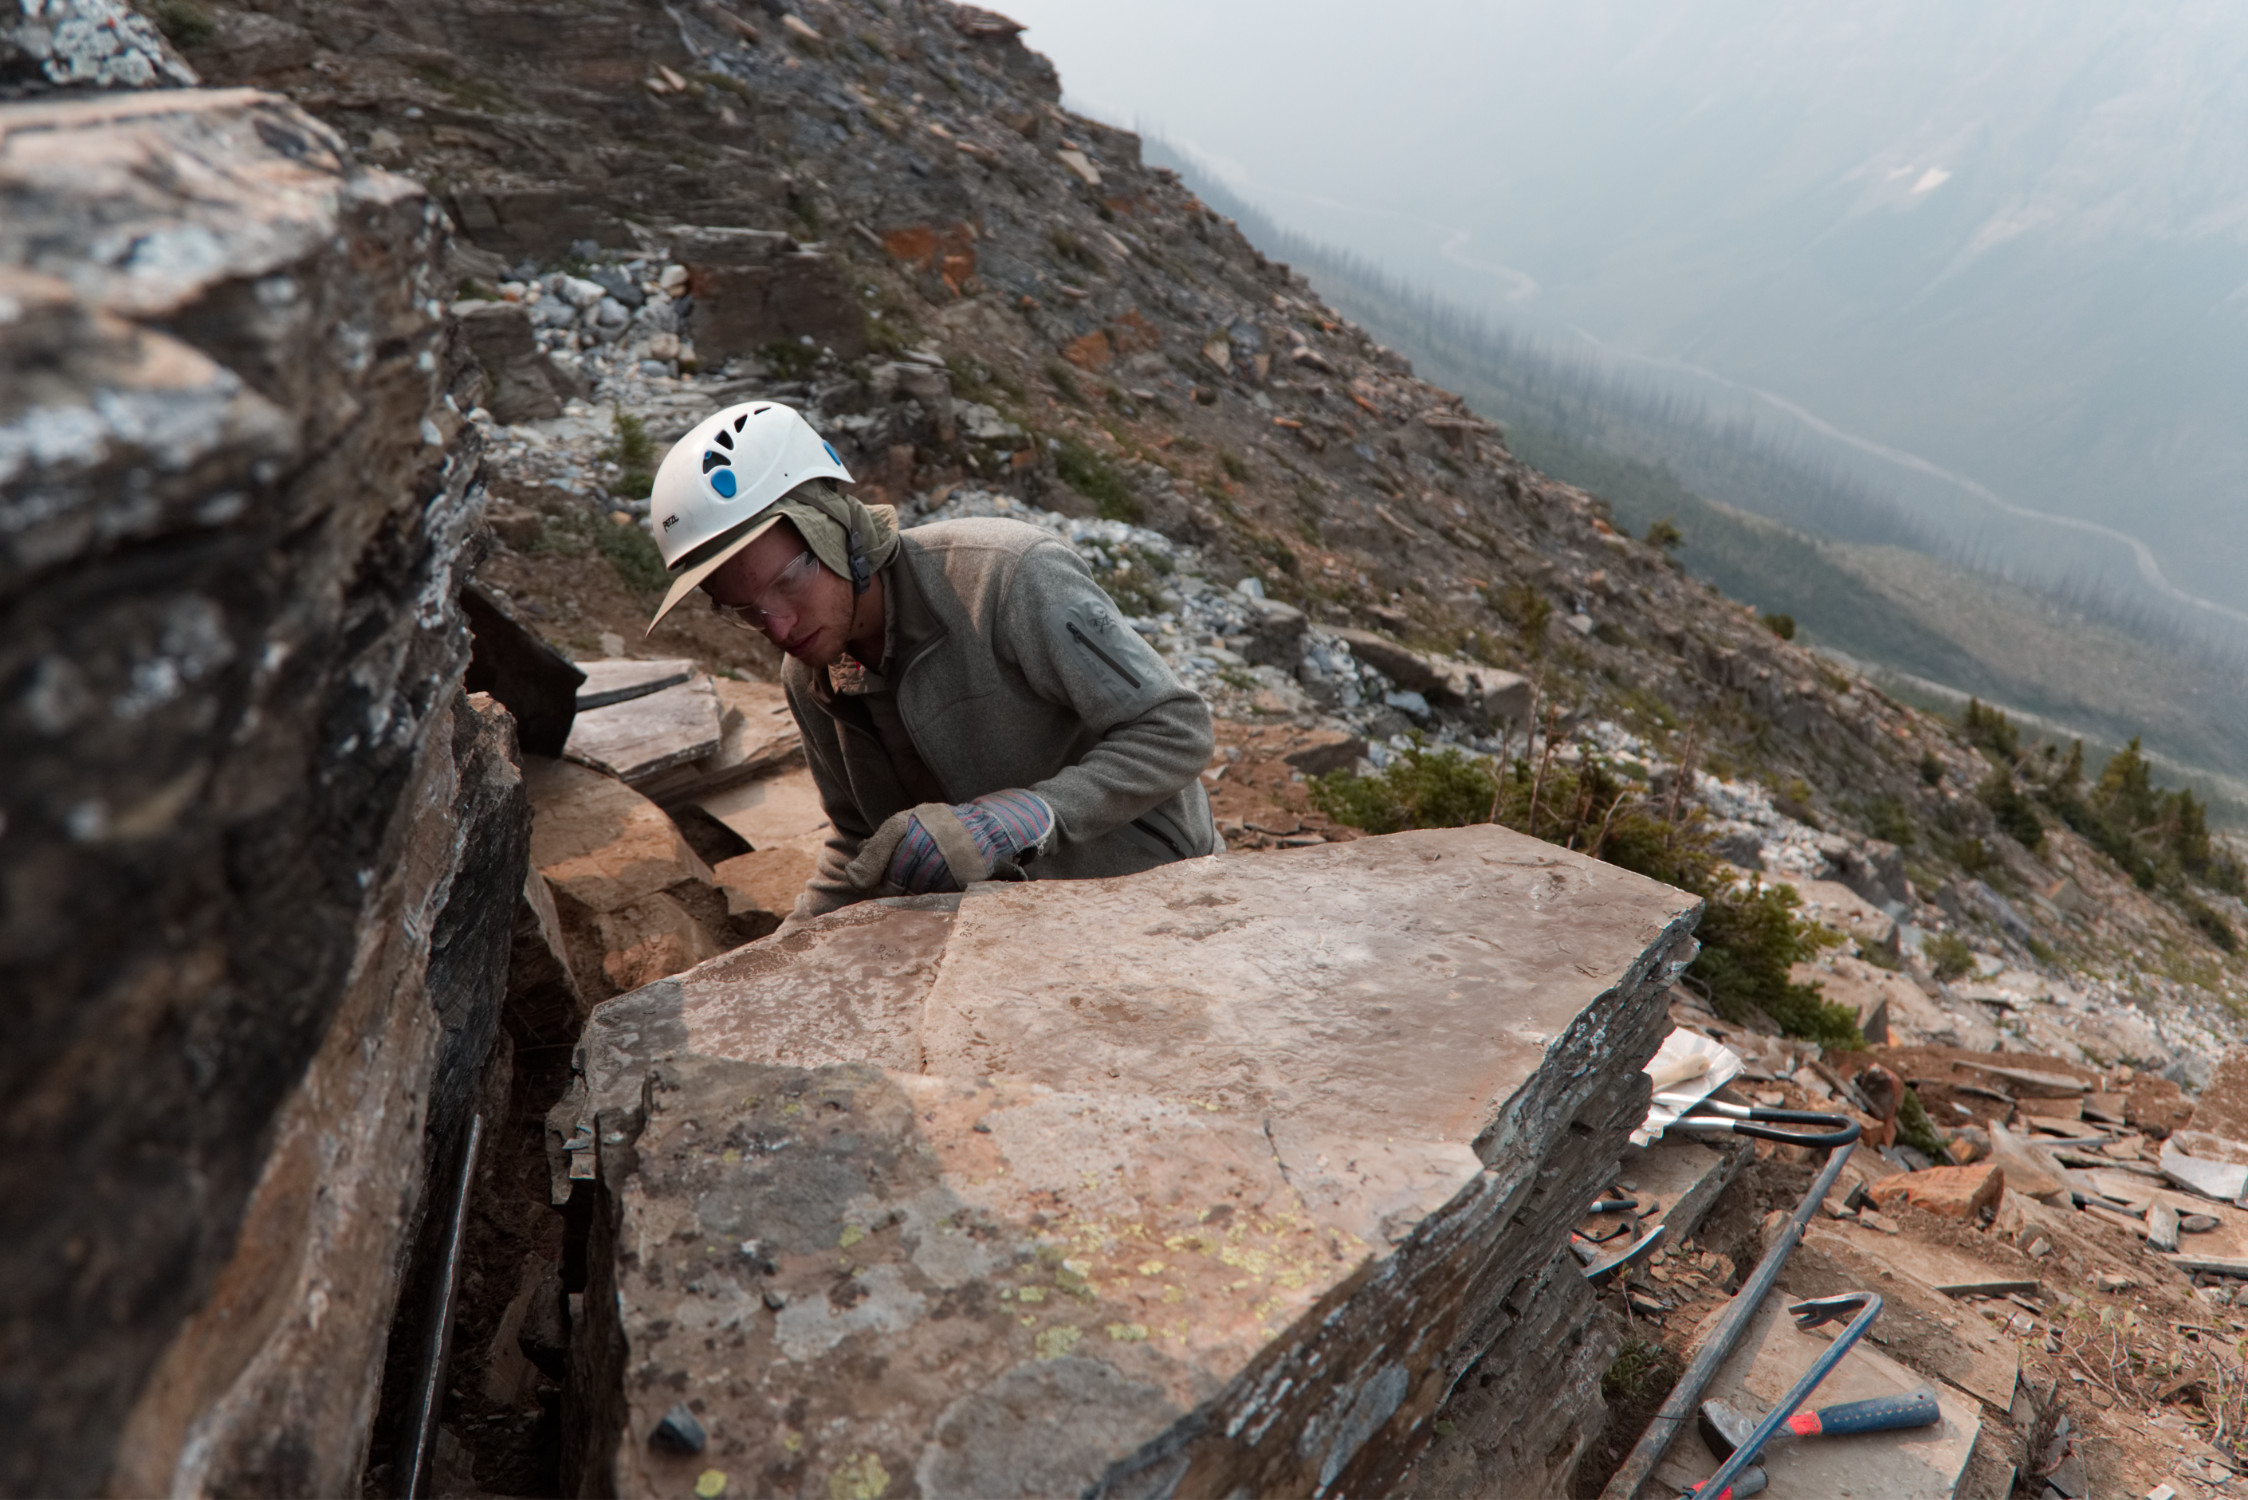 PhD student Joe Moysiuk examines the shale. Photo by Molly Segal.